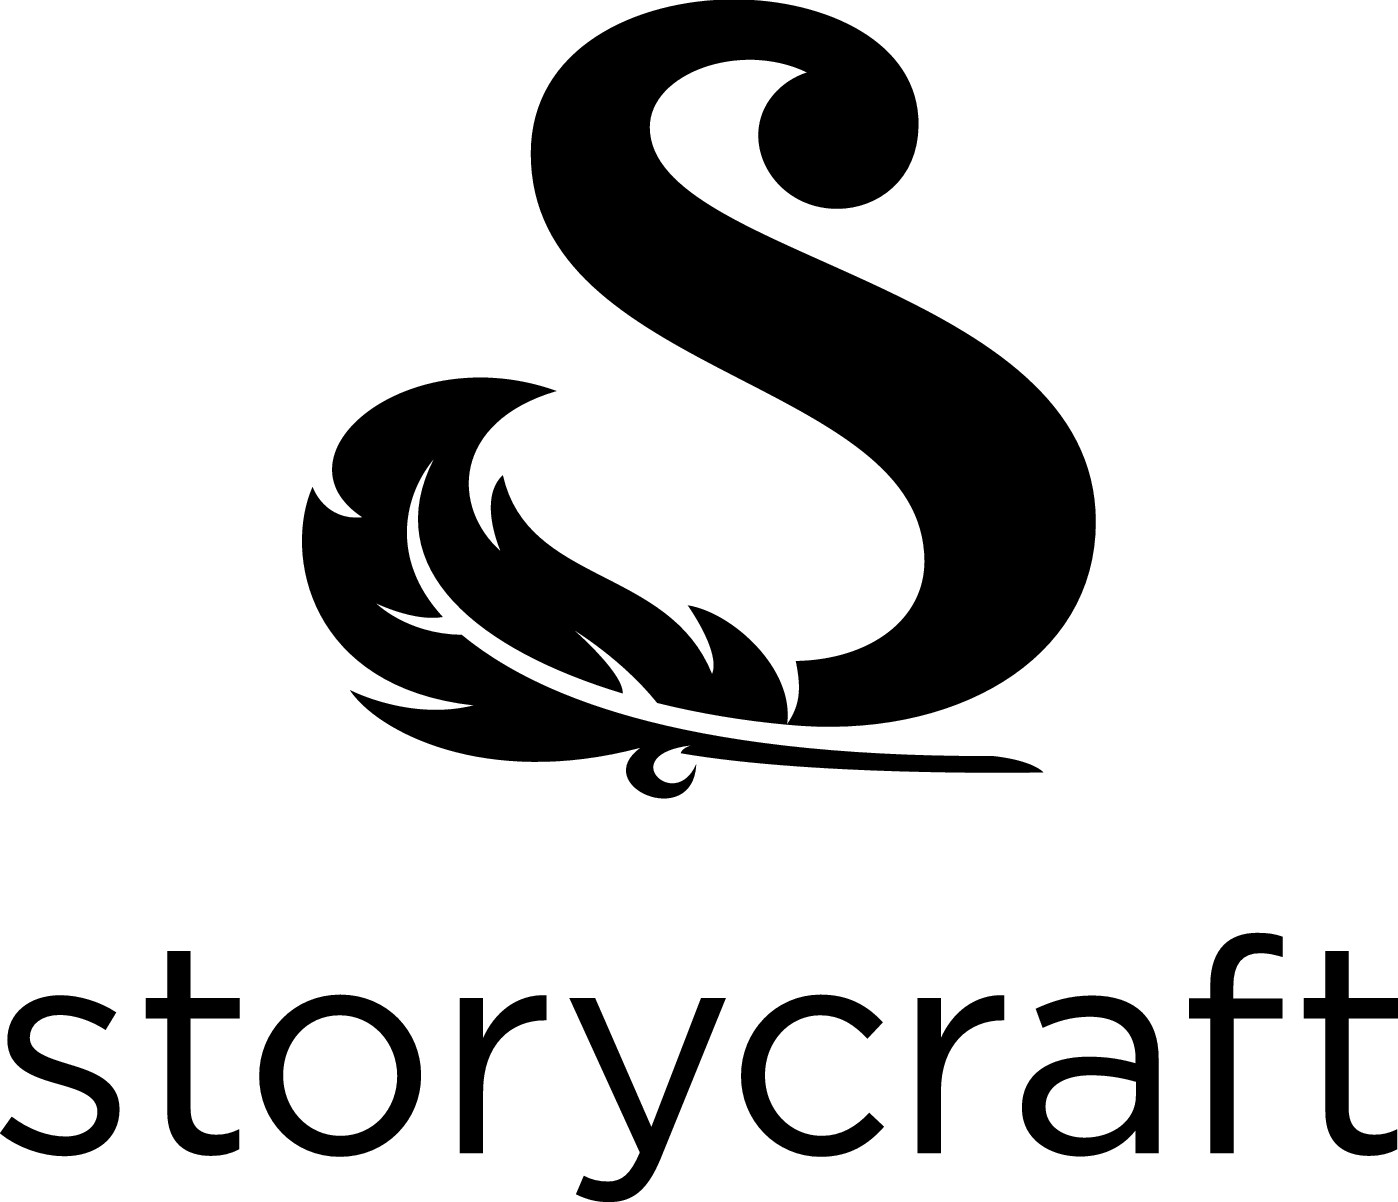 Create a clever and sophisticated consulting business design for StoryCraft.